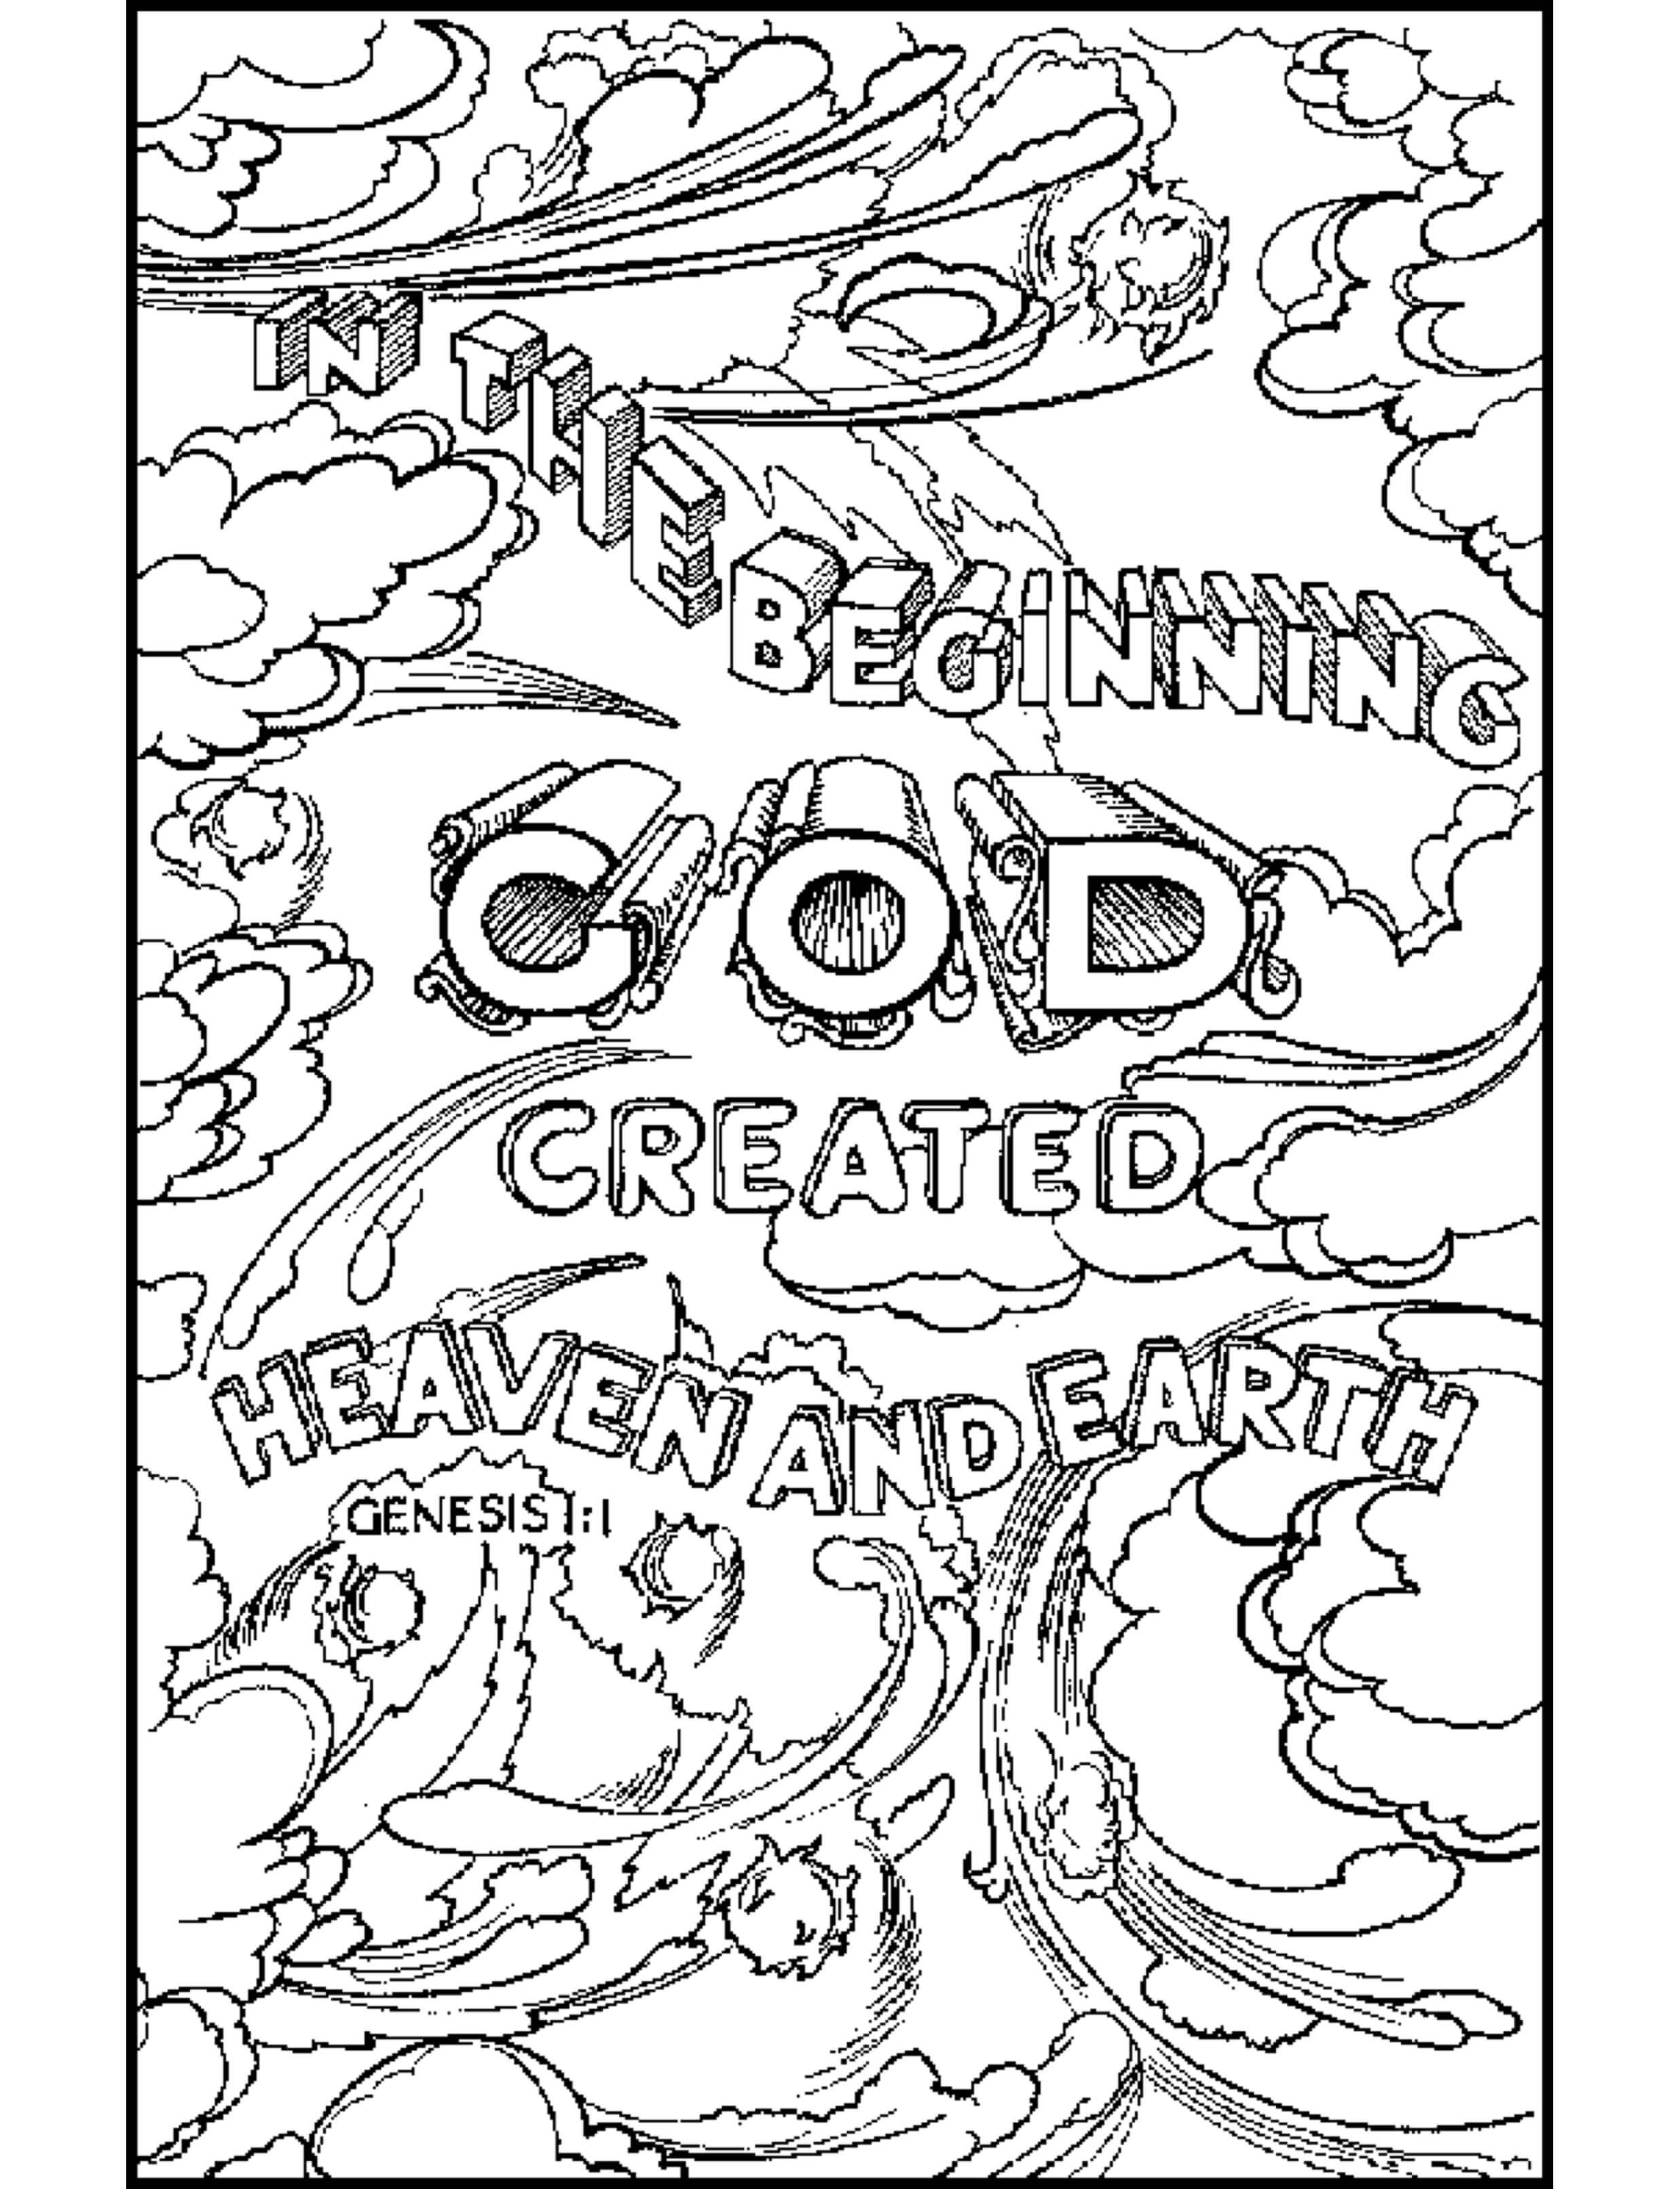 free printable bible coloring pages bible printables coloring pages for sunday school bible pages free coloring printable